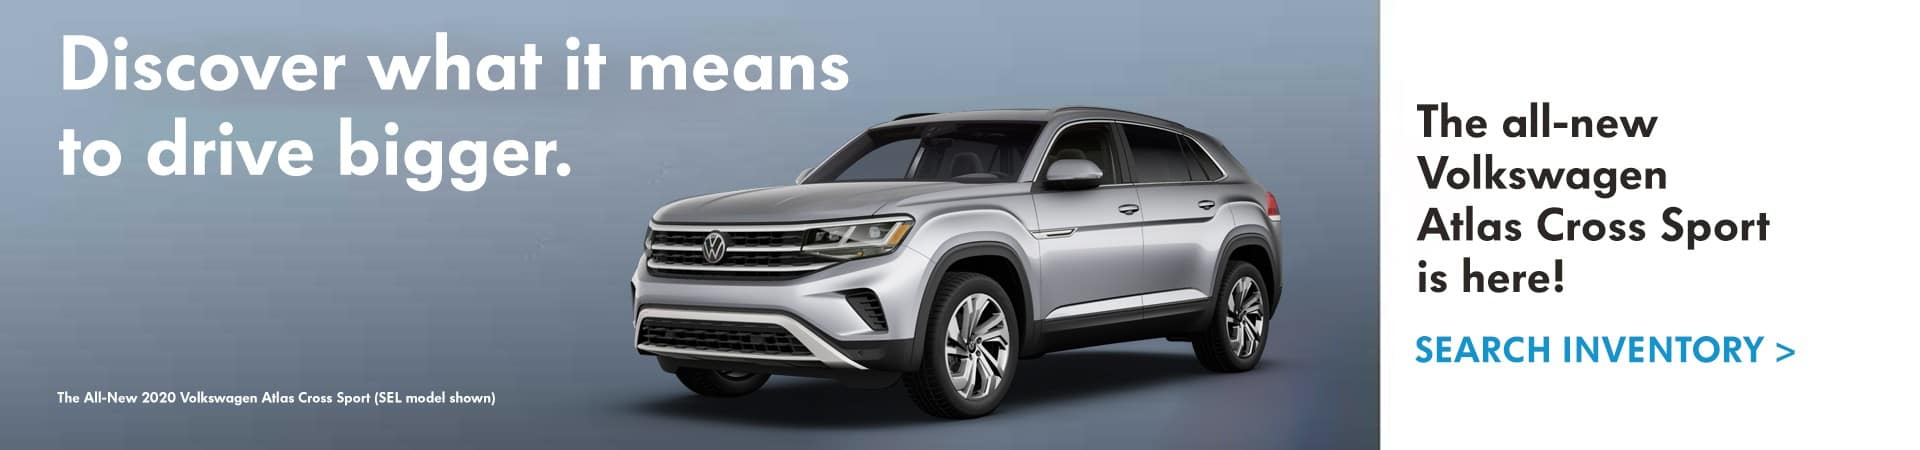 All-New 2020 Volkswagen Atlas Cross Sport